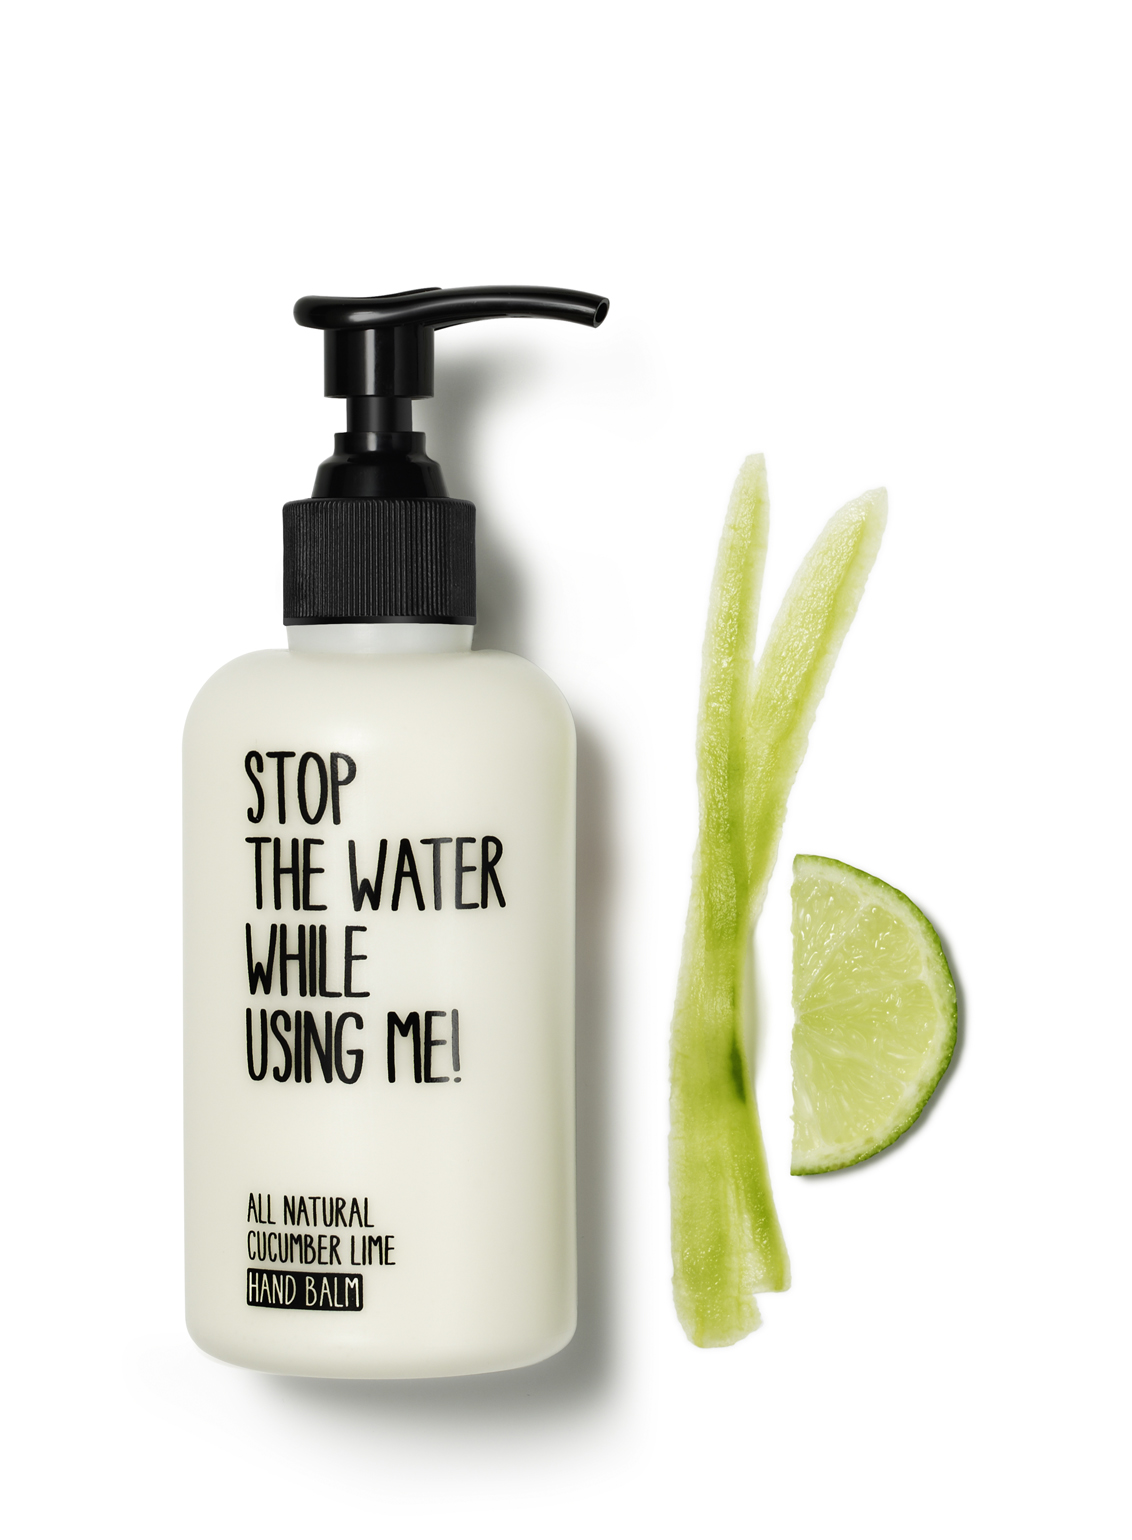 Stop the water while using me 小黃瓜青檸護手乳霜200ml